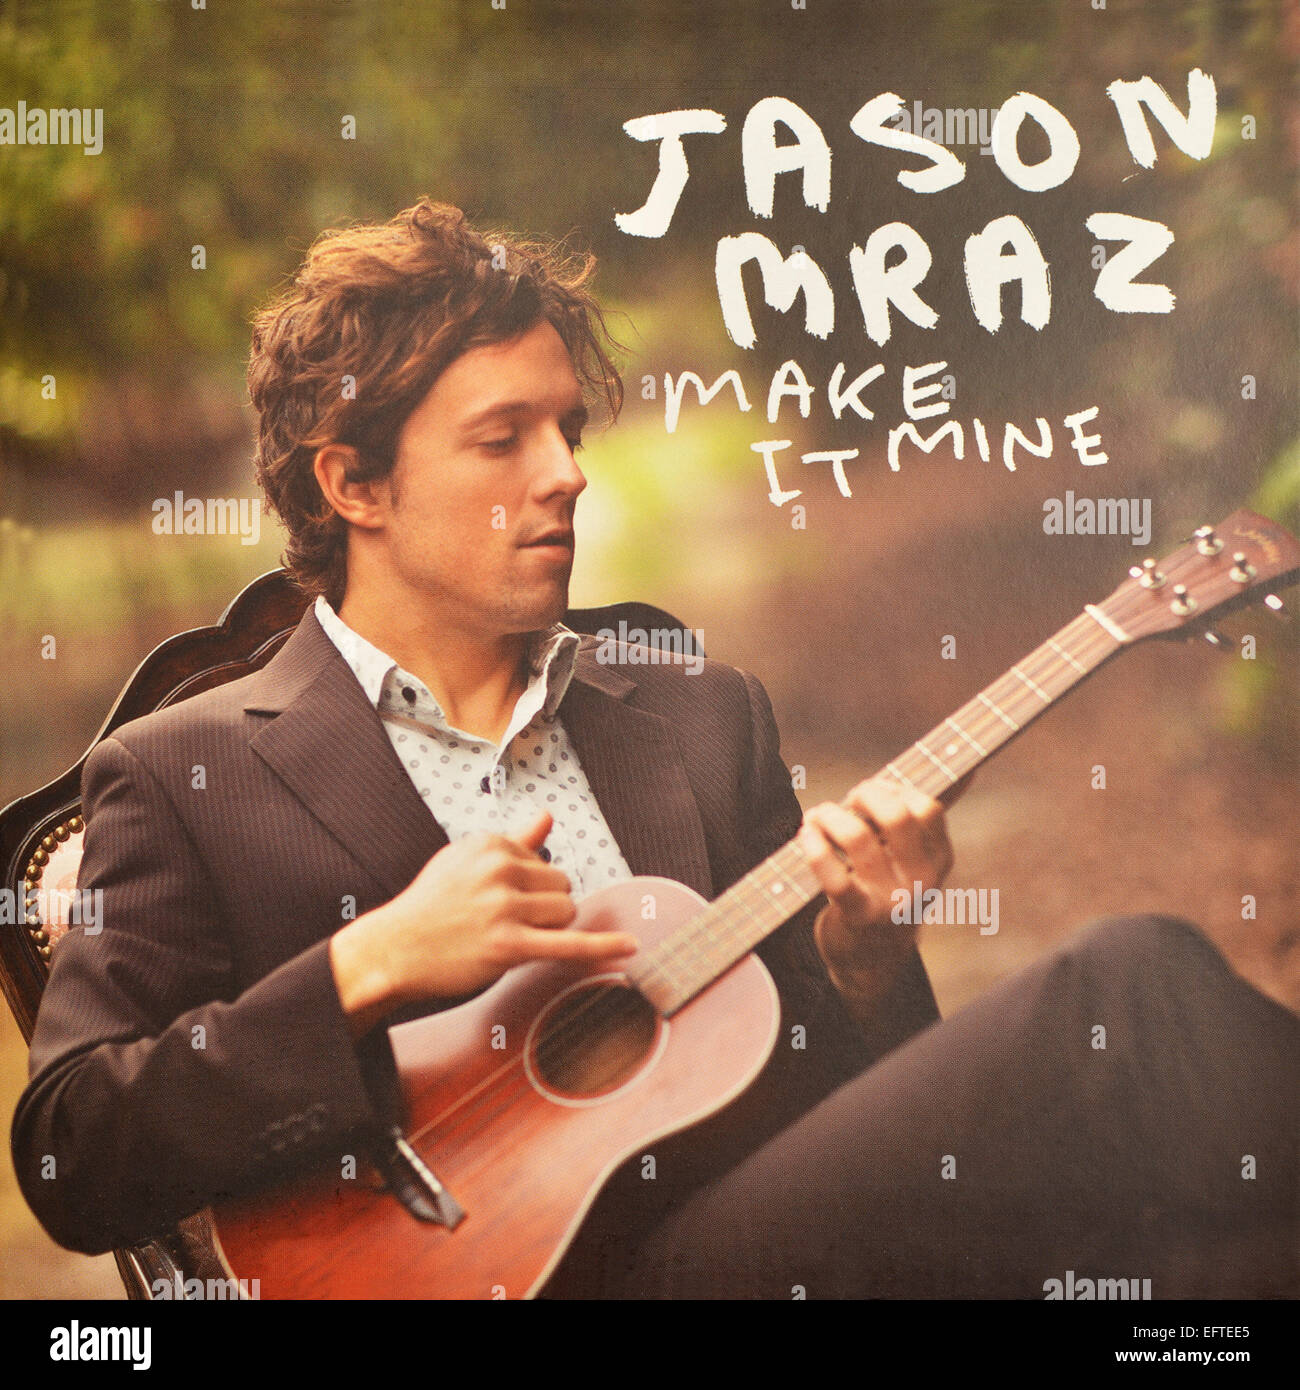 Jason Mraz record cover of Make It Mine. Released by Atlantic Records in 2009 - Stock Image